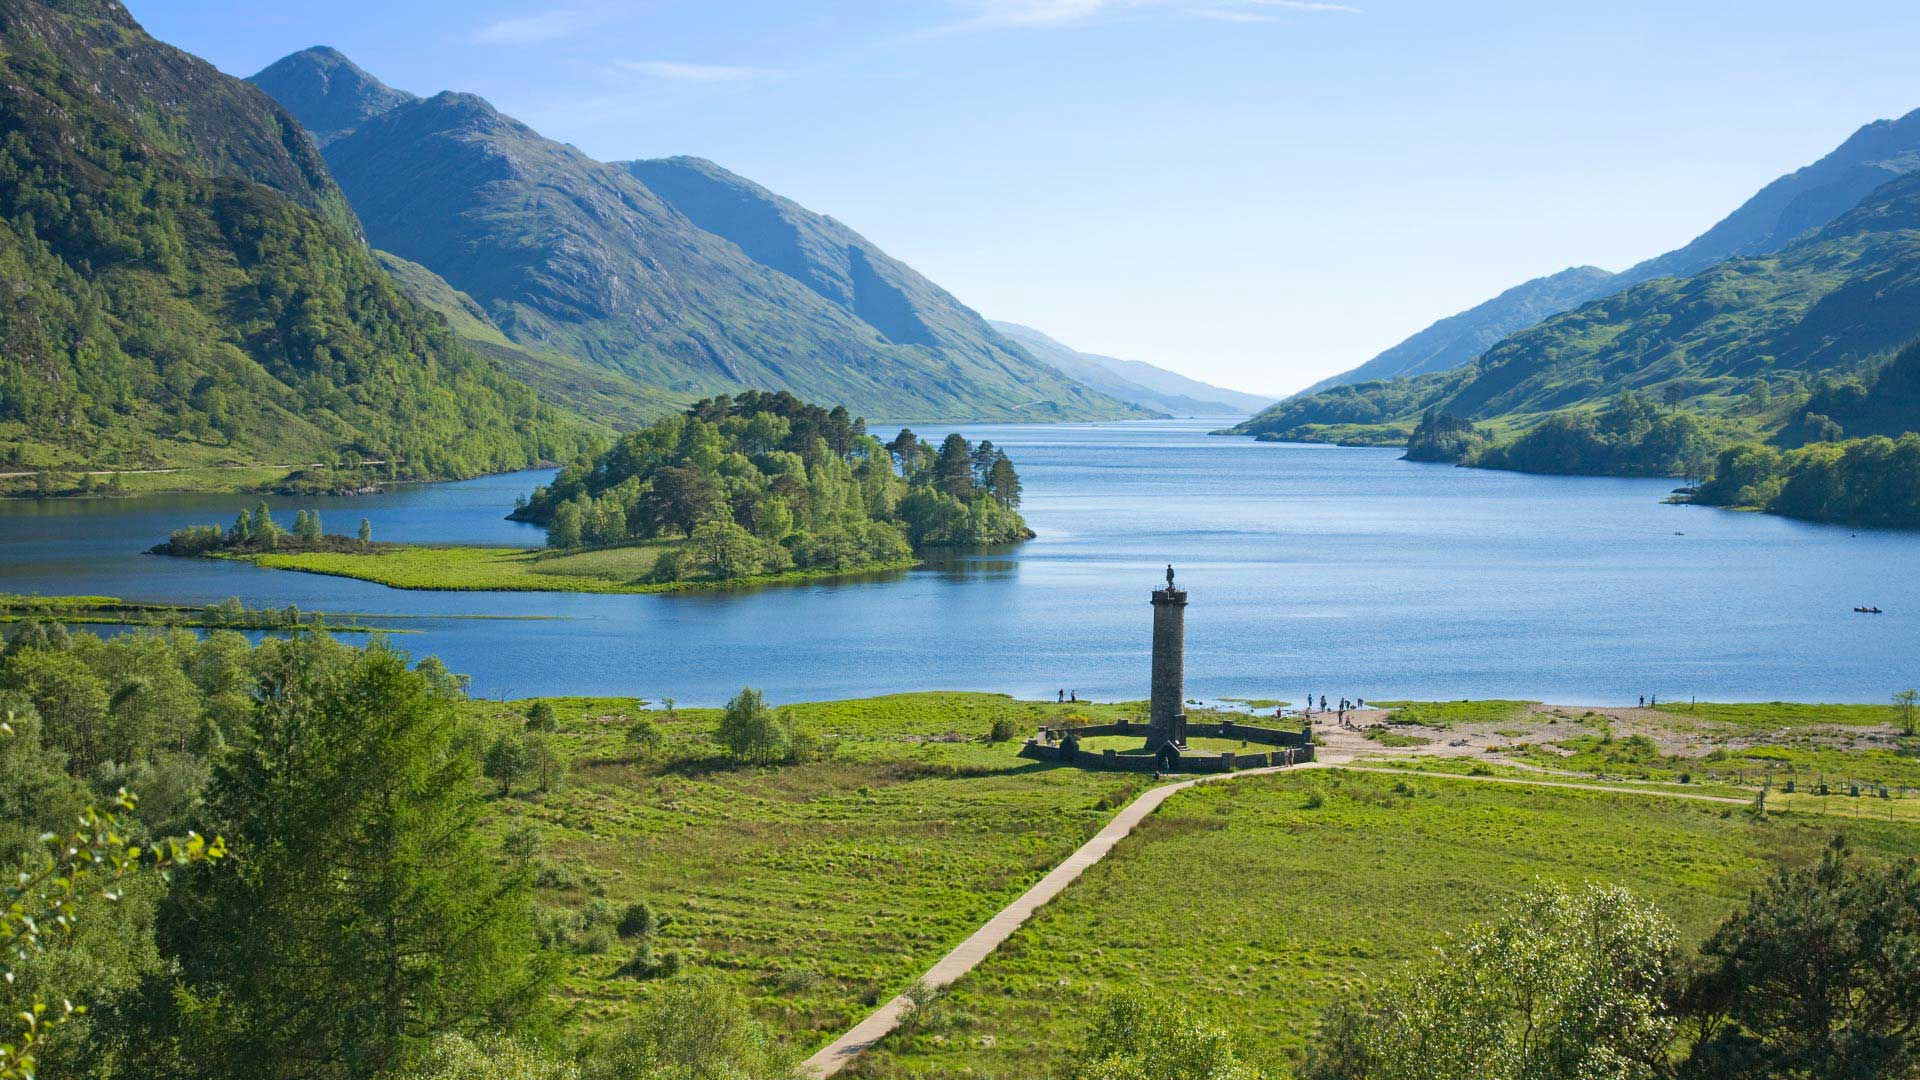 loch shiel at glenfinnan